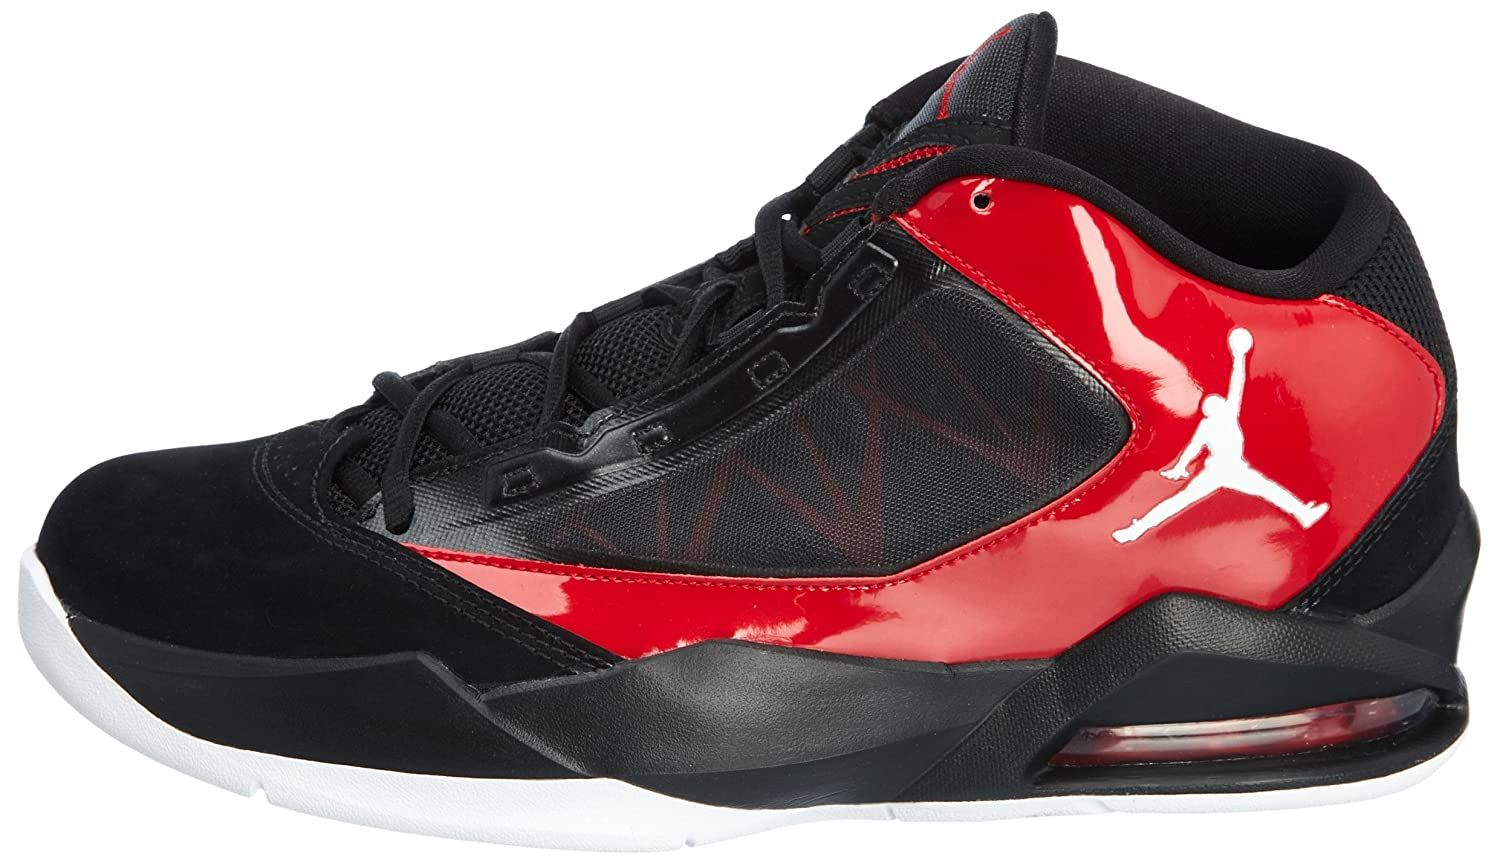 new concept 420e8 a3307 Jordan Flight-The-Power Black Red 2012 Air Mens Basketball Shoes 487207-002  BLACK WHITE-VARSITY RED 9 D(M) US  Buy Online at Low Prices in India -  Amazon.in